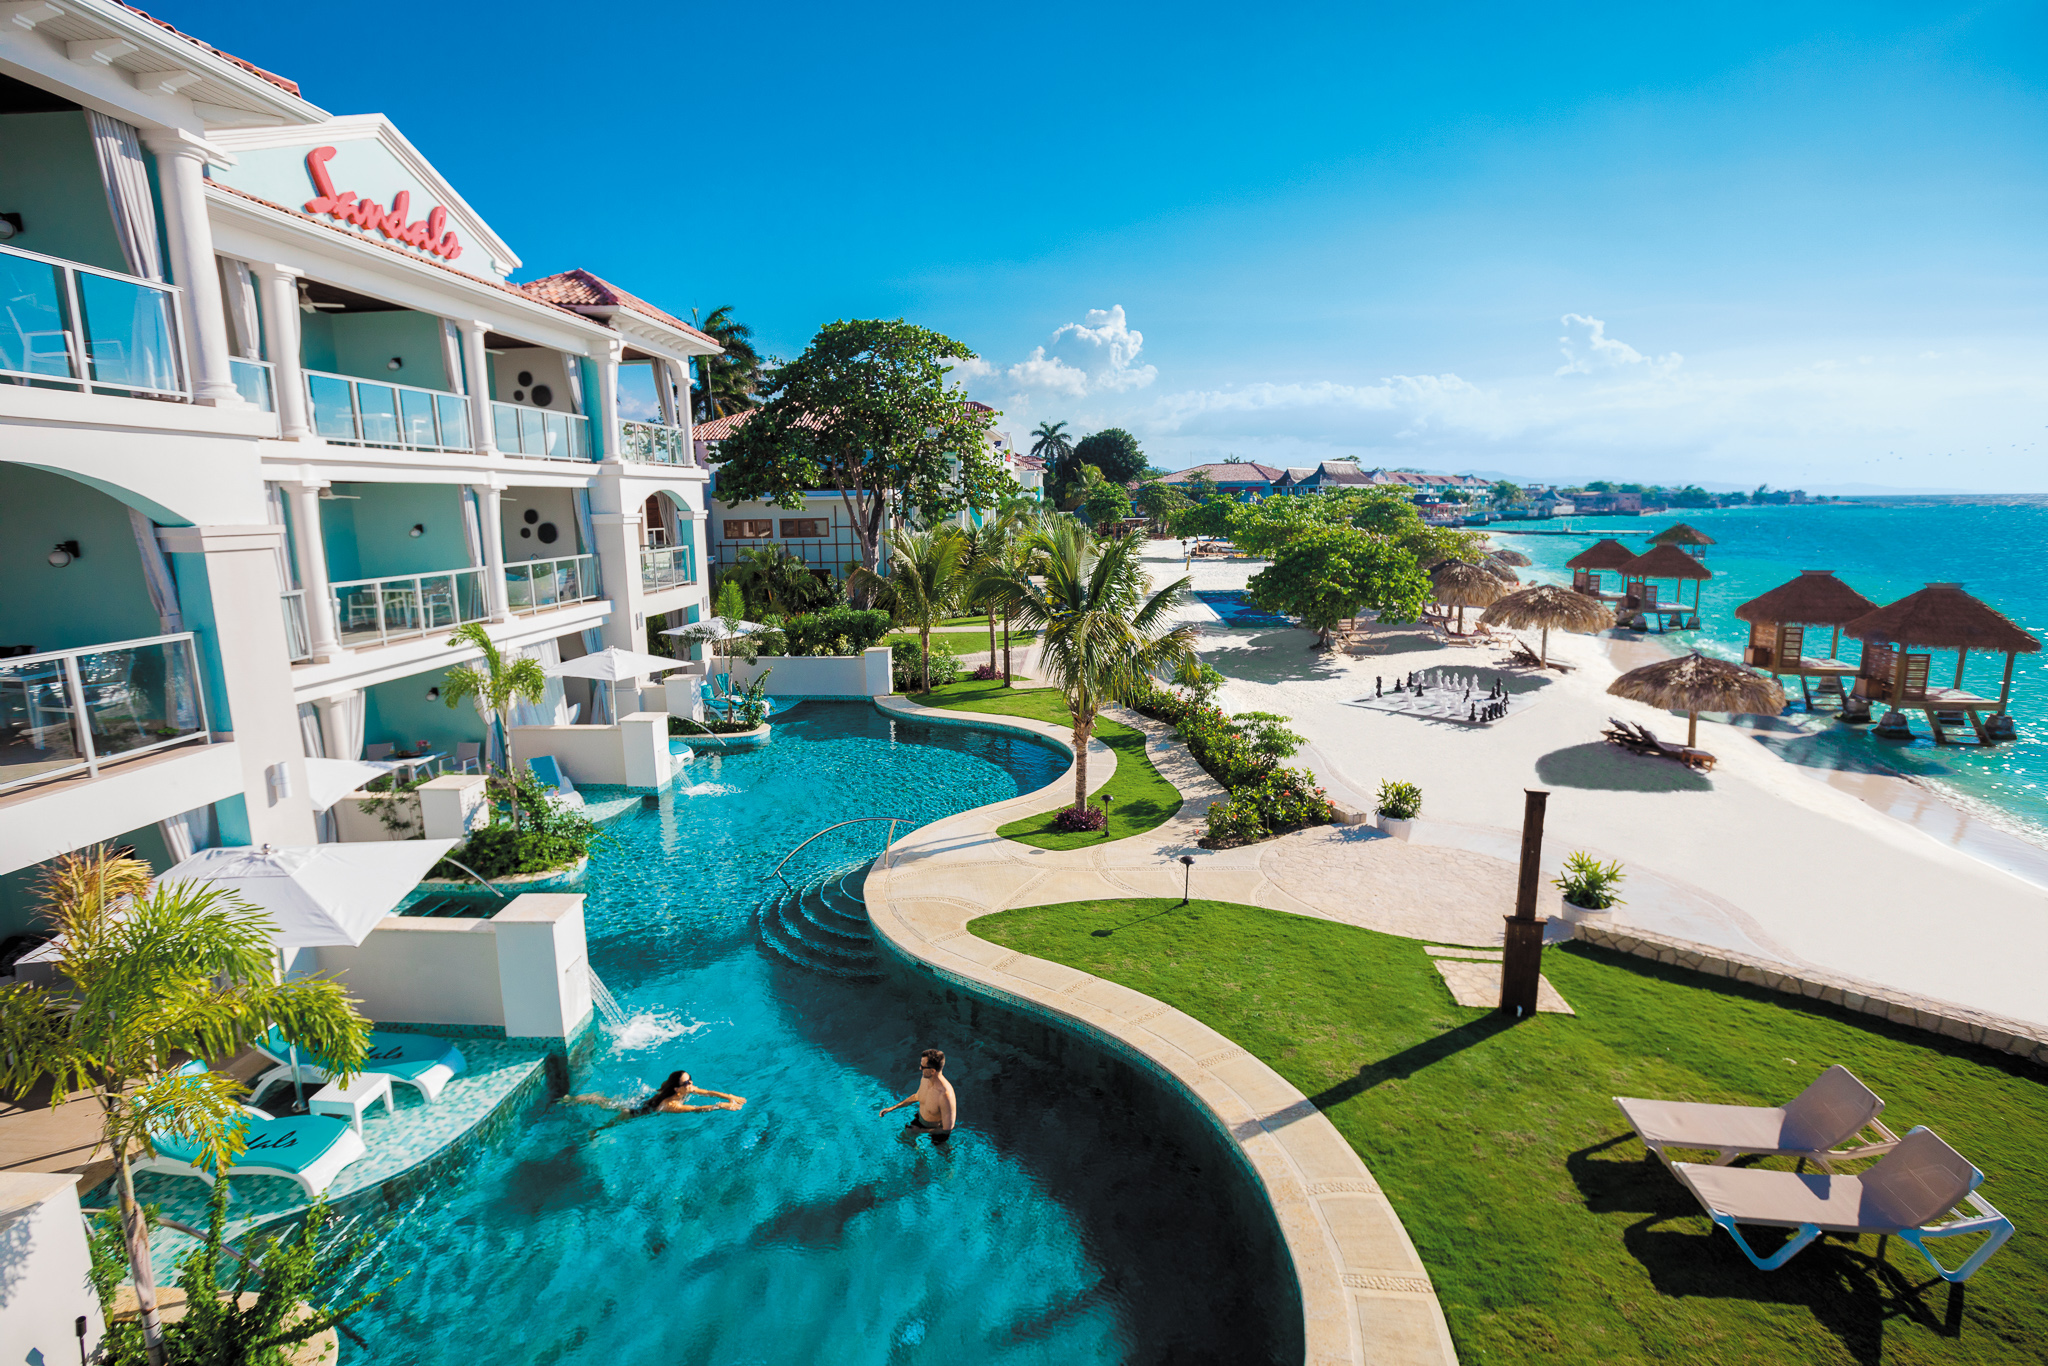 Real love stories told at Sandals Montego Bay. Pictured: Lagoon pool and beachfront swim-up suites